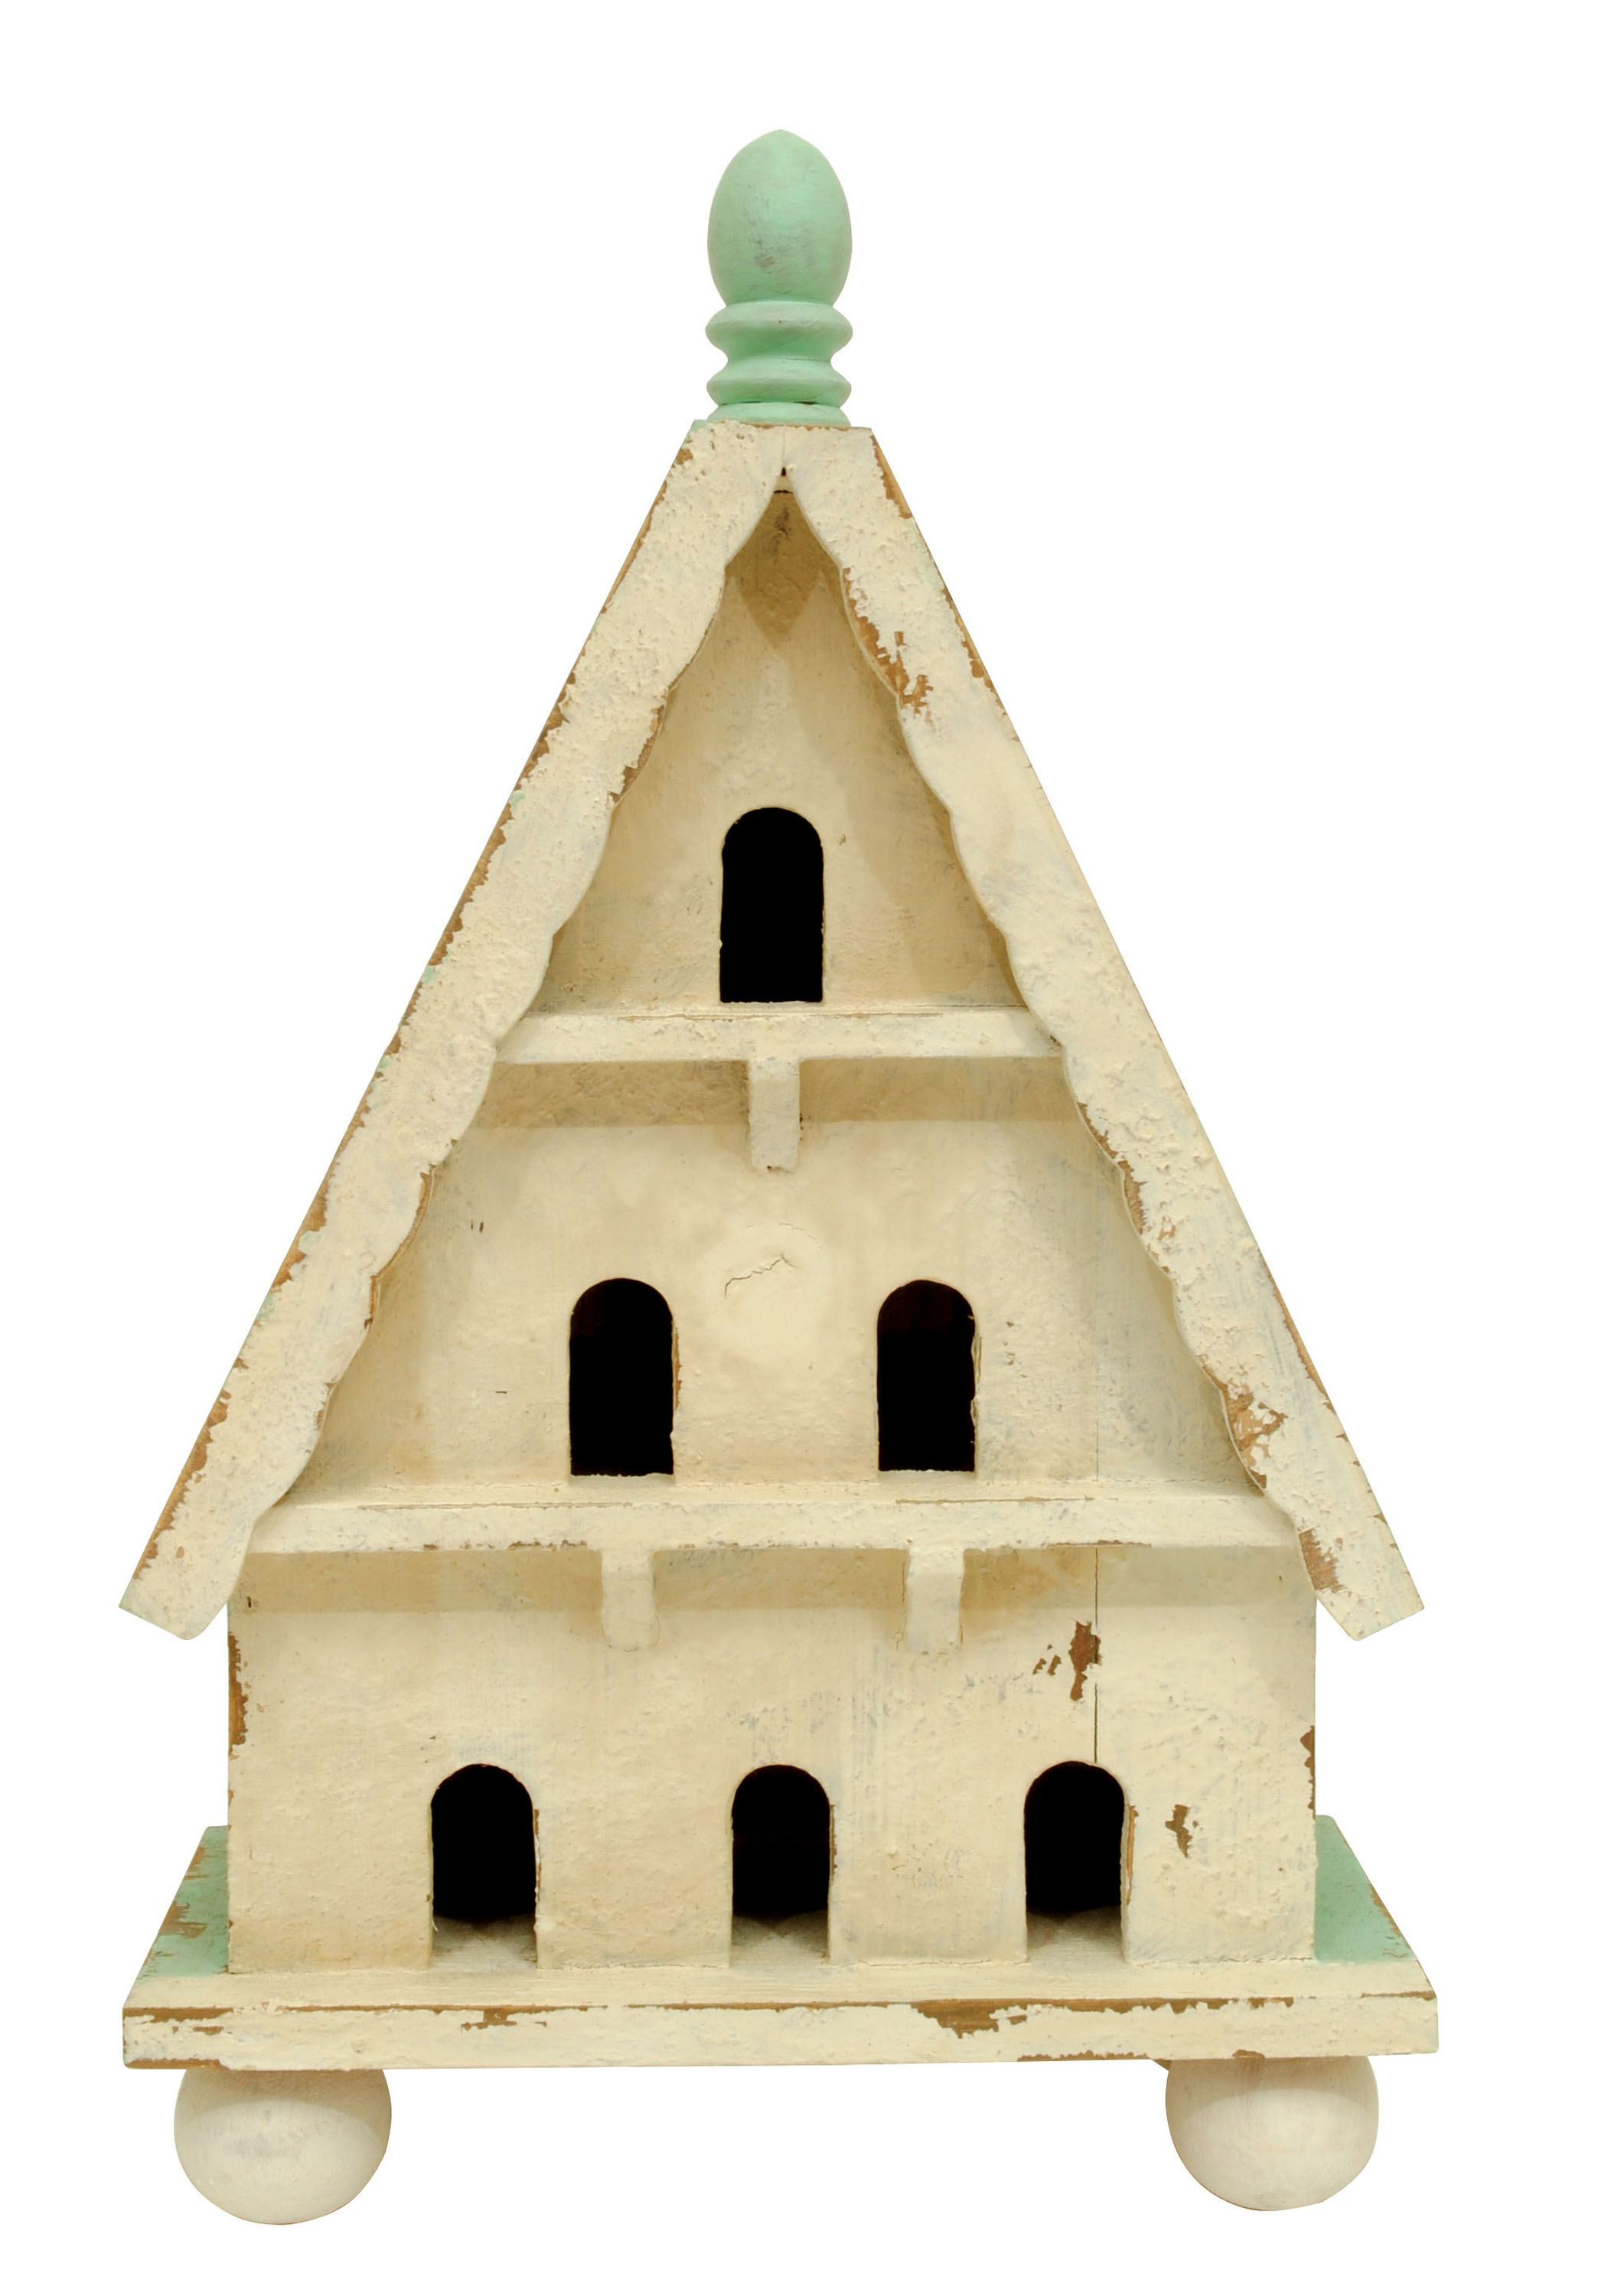 Famrhouse Birdhouse for the Rustic Farmhouse or Cottage look